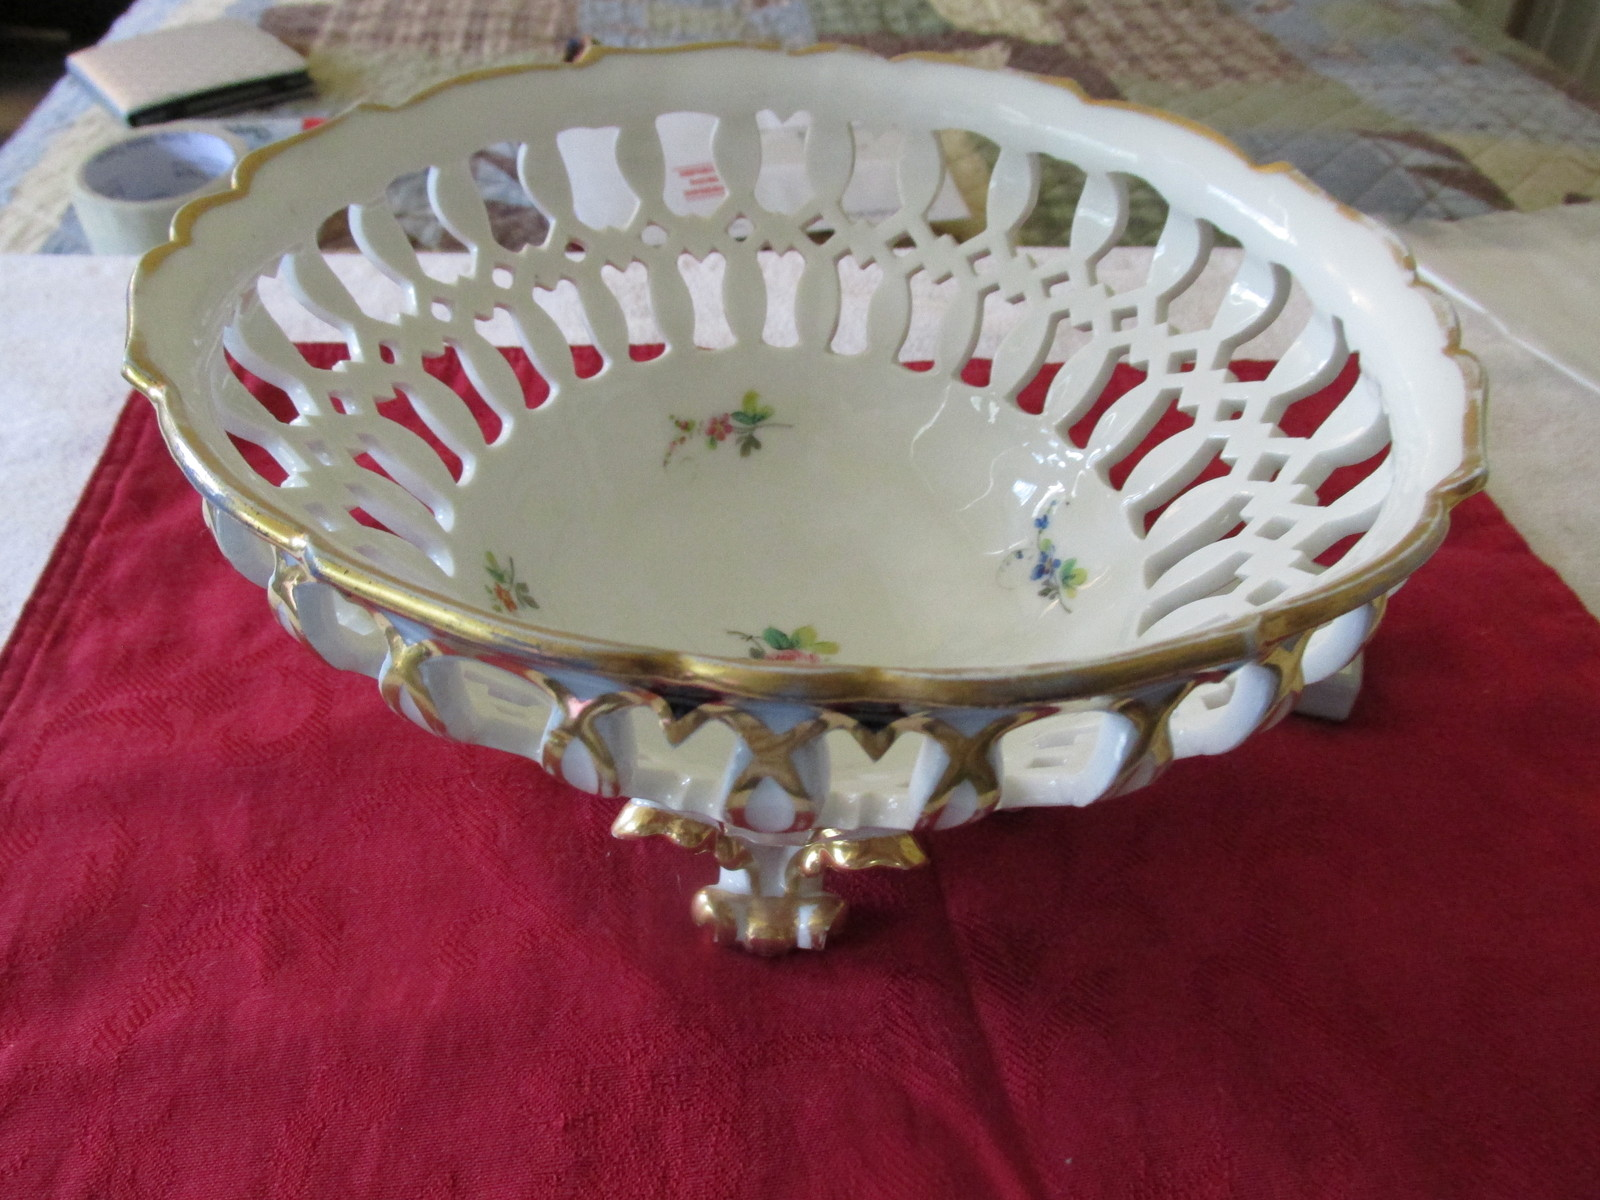 Decorative Cut - Out Floral Fruit  Footed Bowl